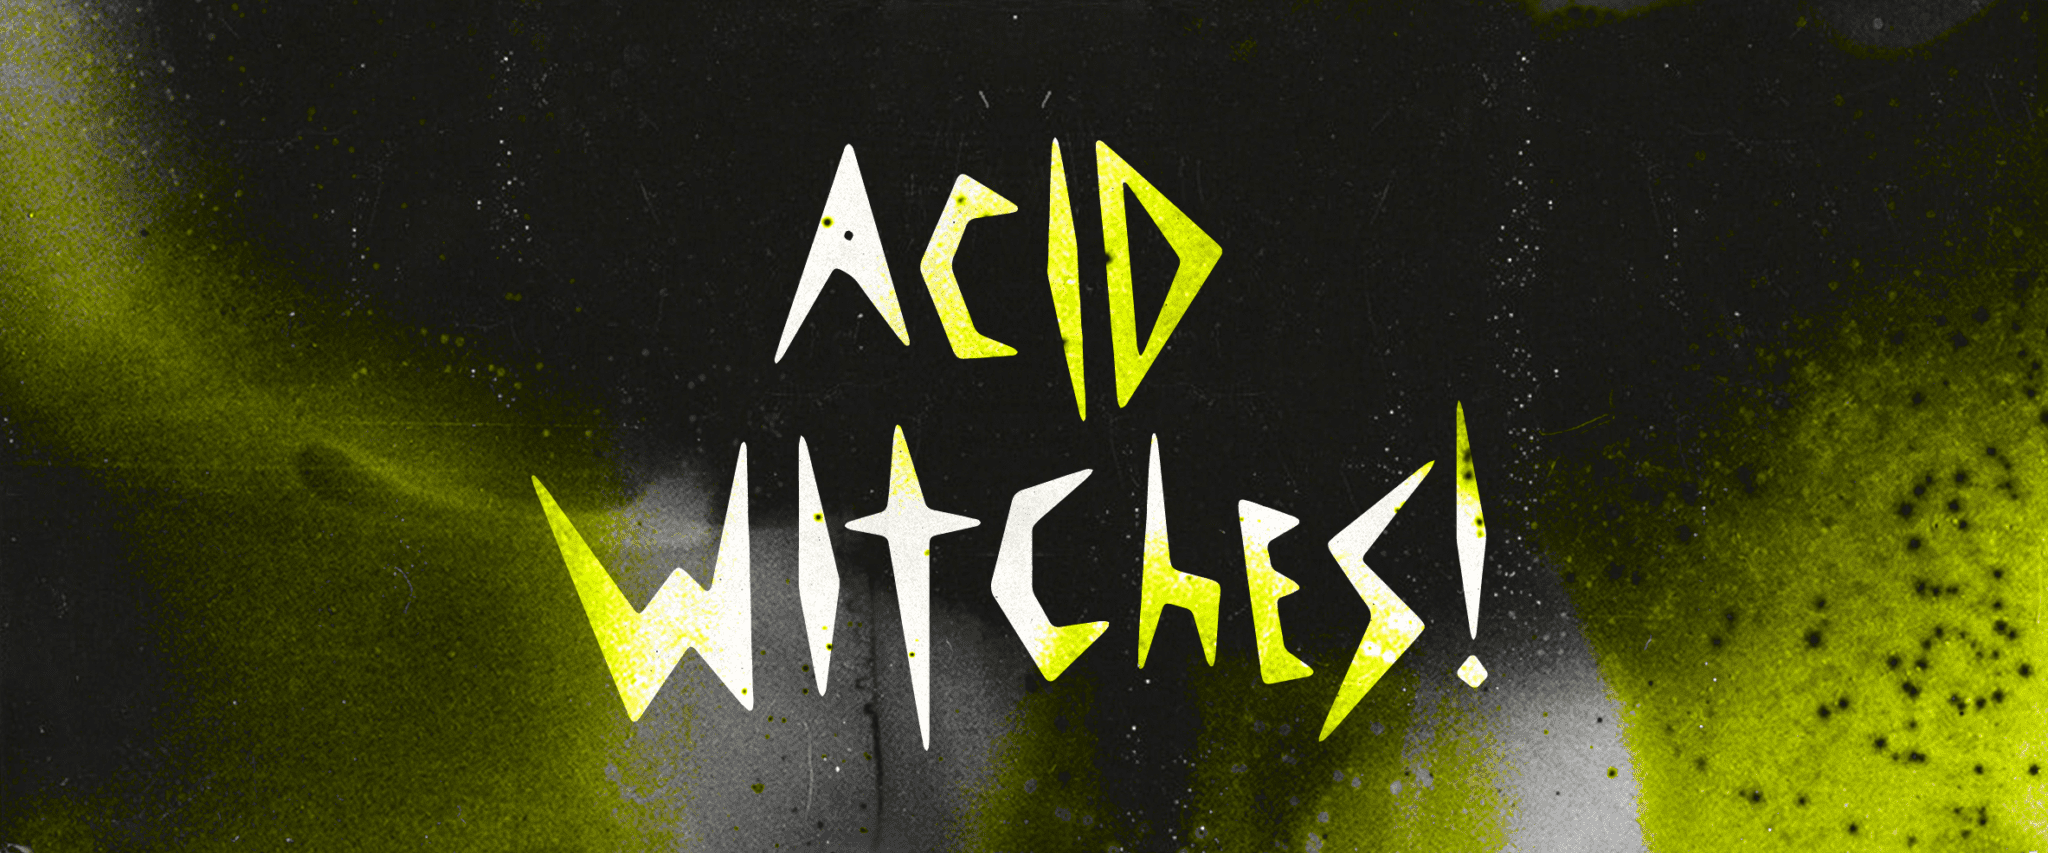 Acid Witches!